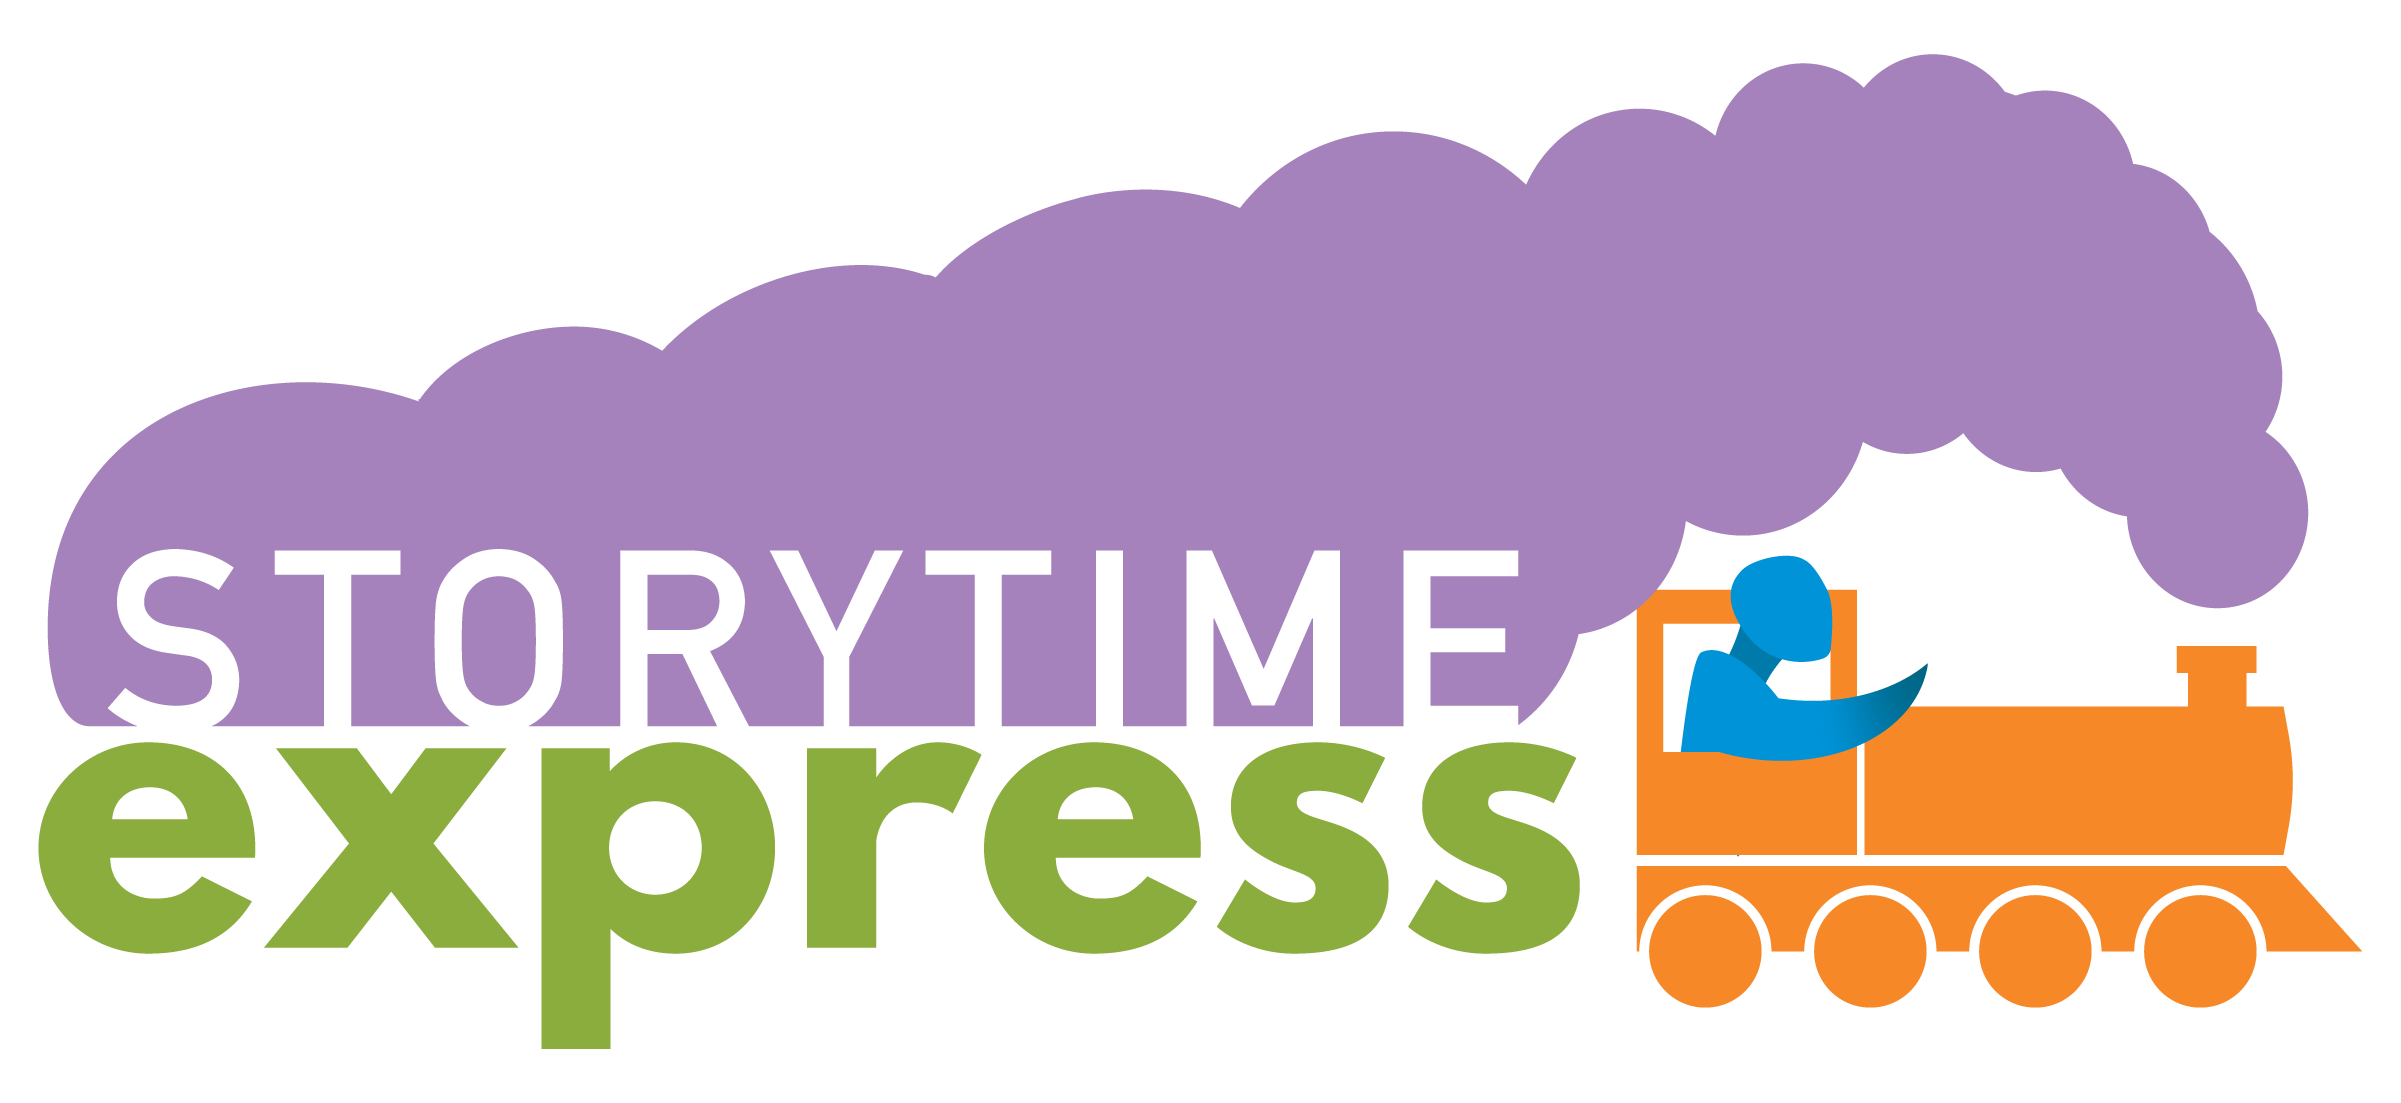 Storytime Express